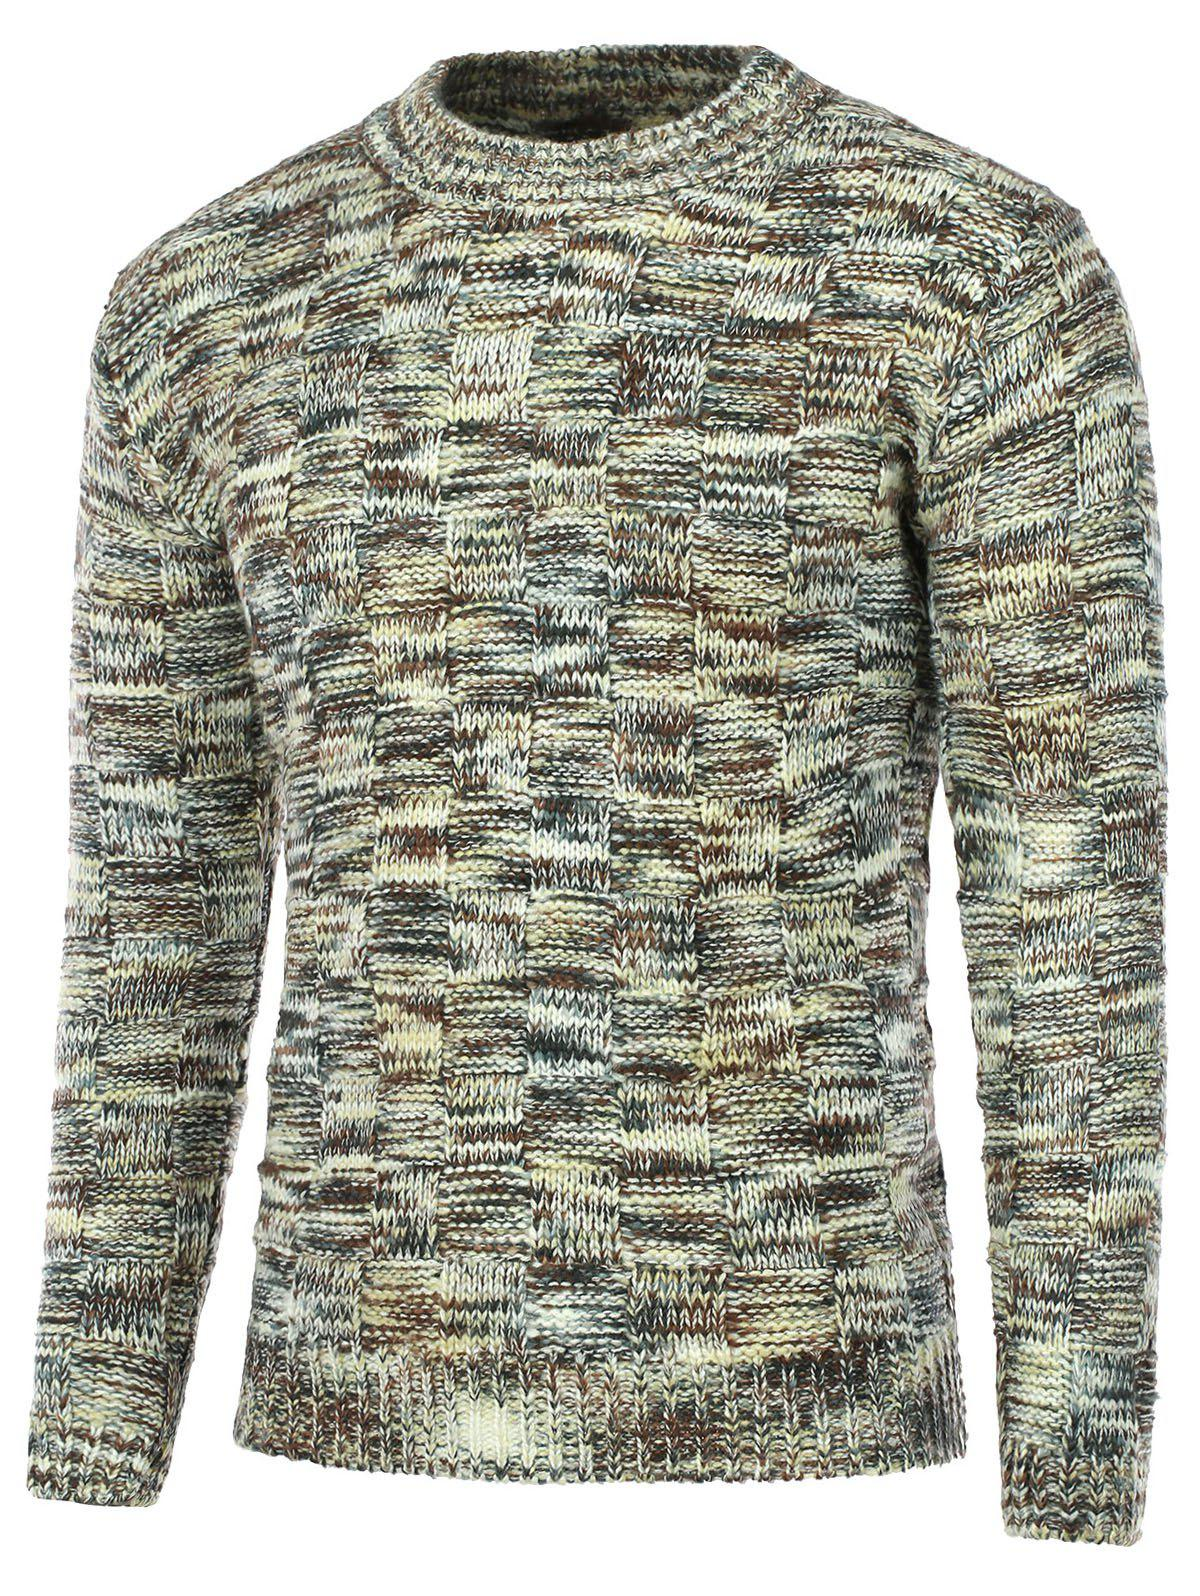 Crew Neck Weave Pattern Knitted Sweater - KHAKI L